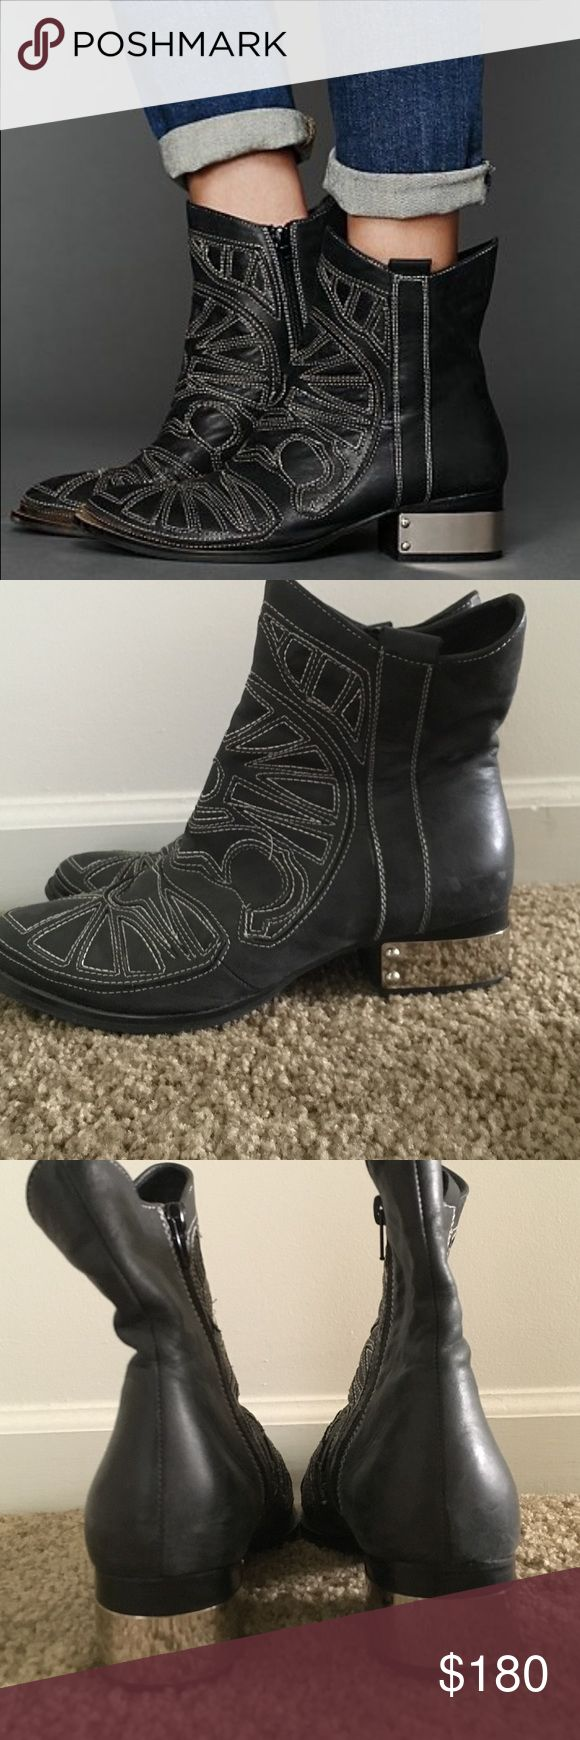 Jeffrey Campbell Cavalier Boot Jeffrey Campbell Cavalier boot in washed black leather with white stitching. Metal plates on heels. Great condition. Very minimal scuffing on one back of shoe. Jeffrey Campbell Shoes Ankle Boots & Booties